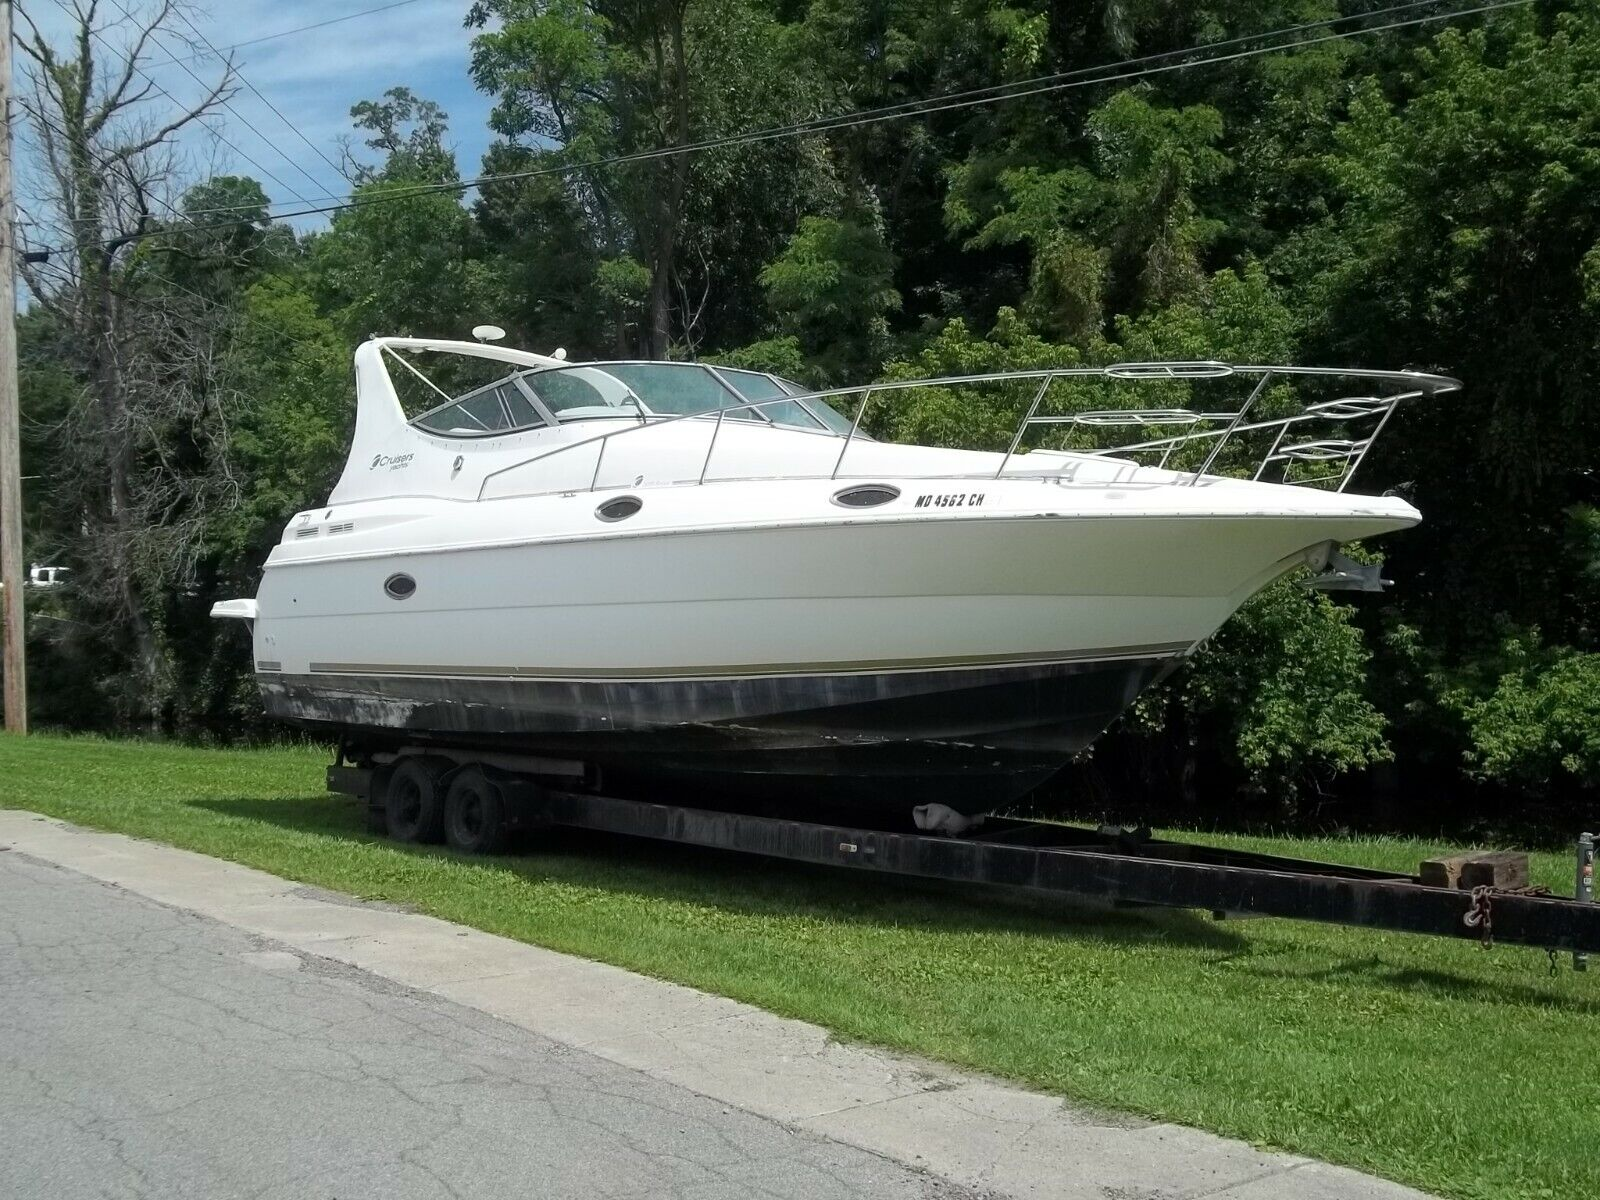 1998 CRUISERS INC 3075 PROJECT BOAT